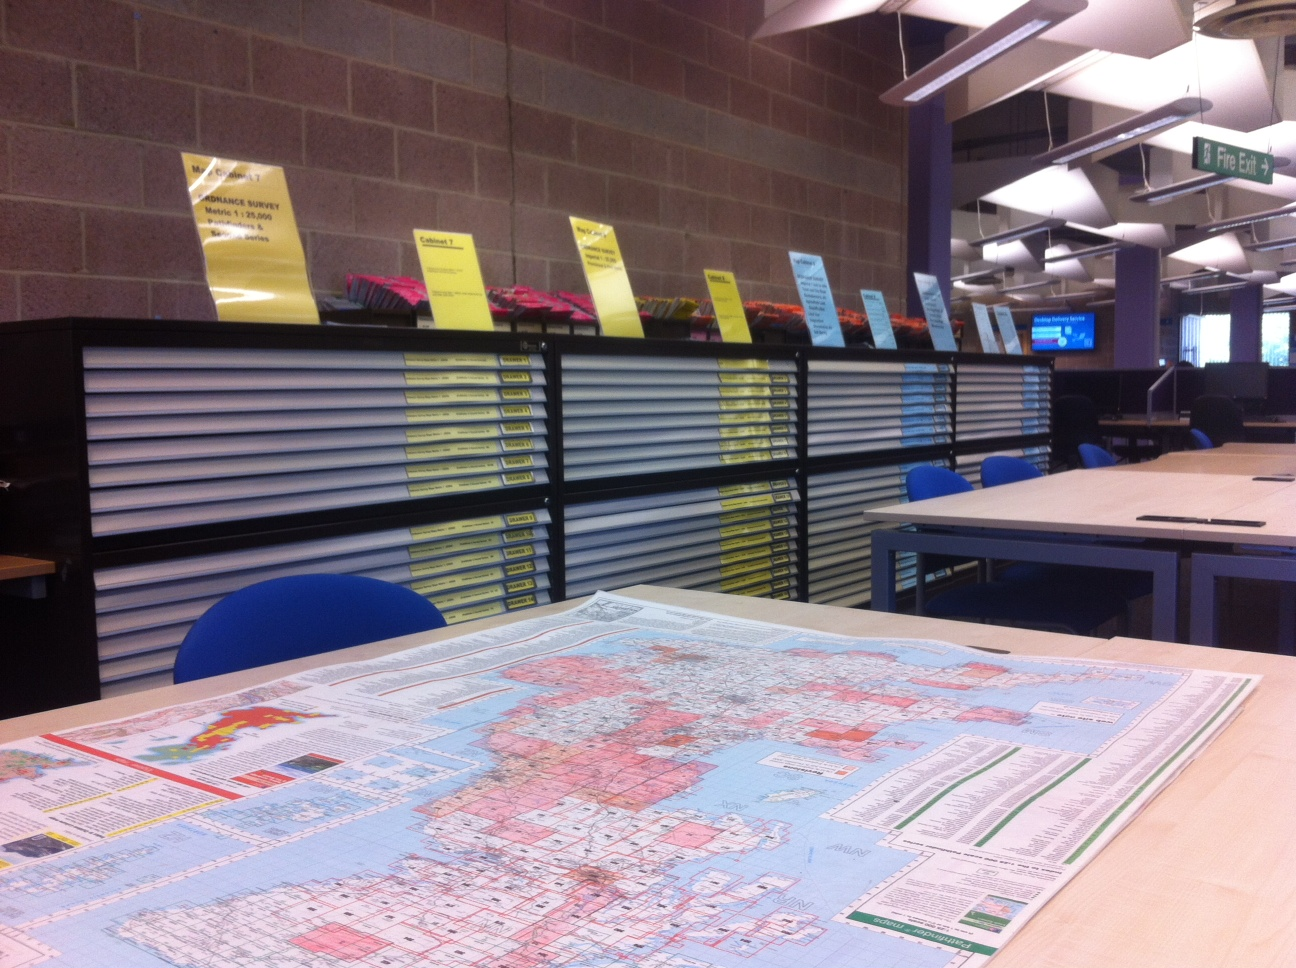 Map Cabinets in the Robinson Library